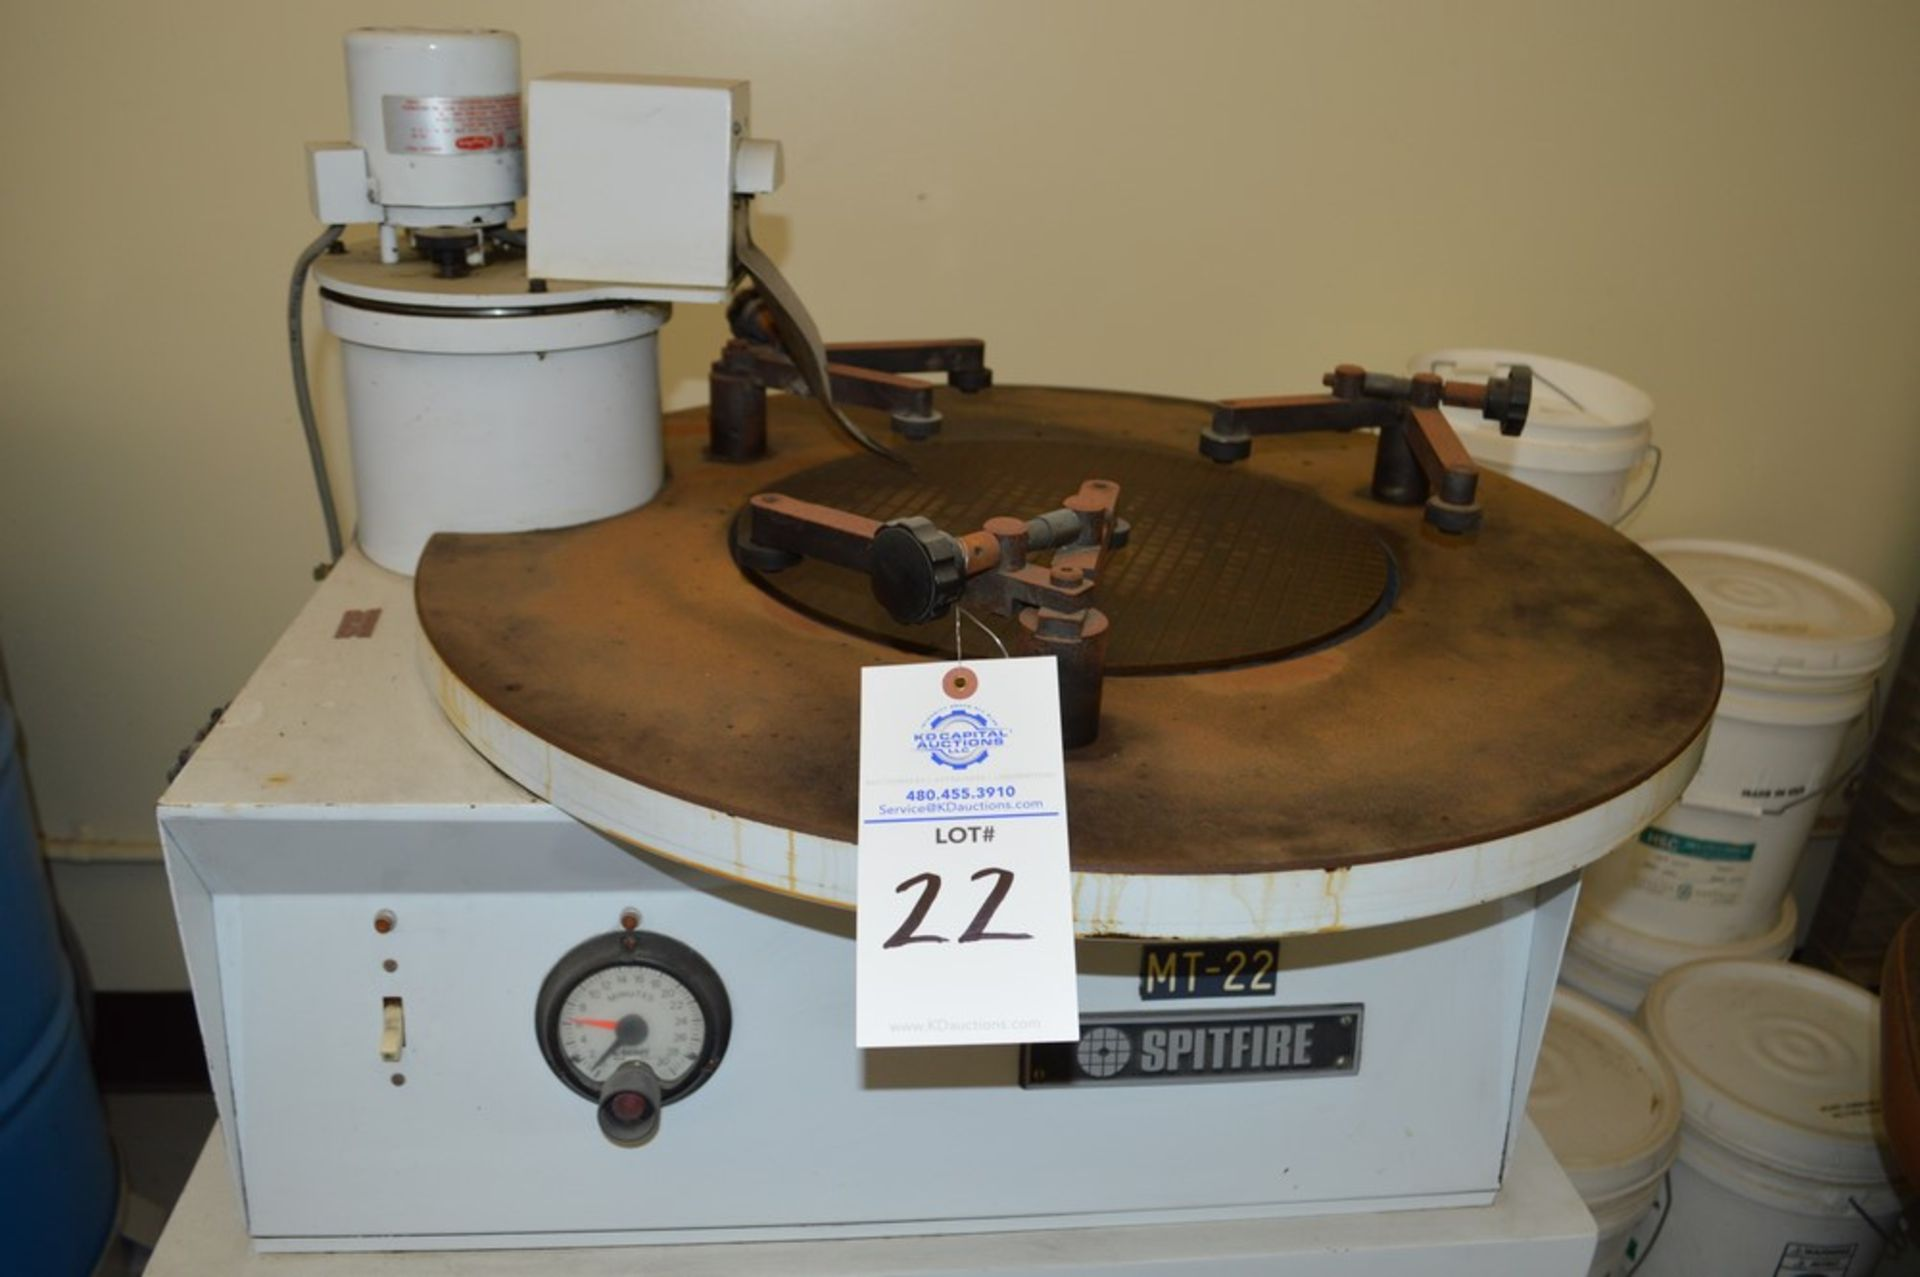 Spitfire MT-22, Some spare parts, on metal stand - Image 2 of 4